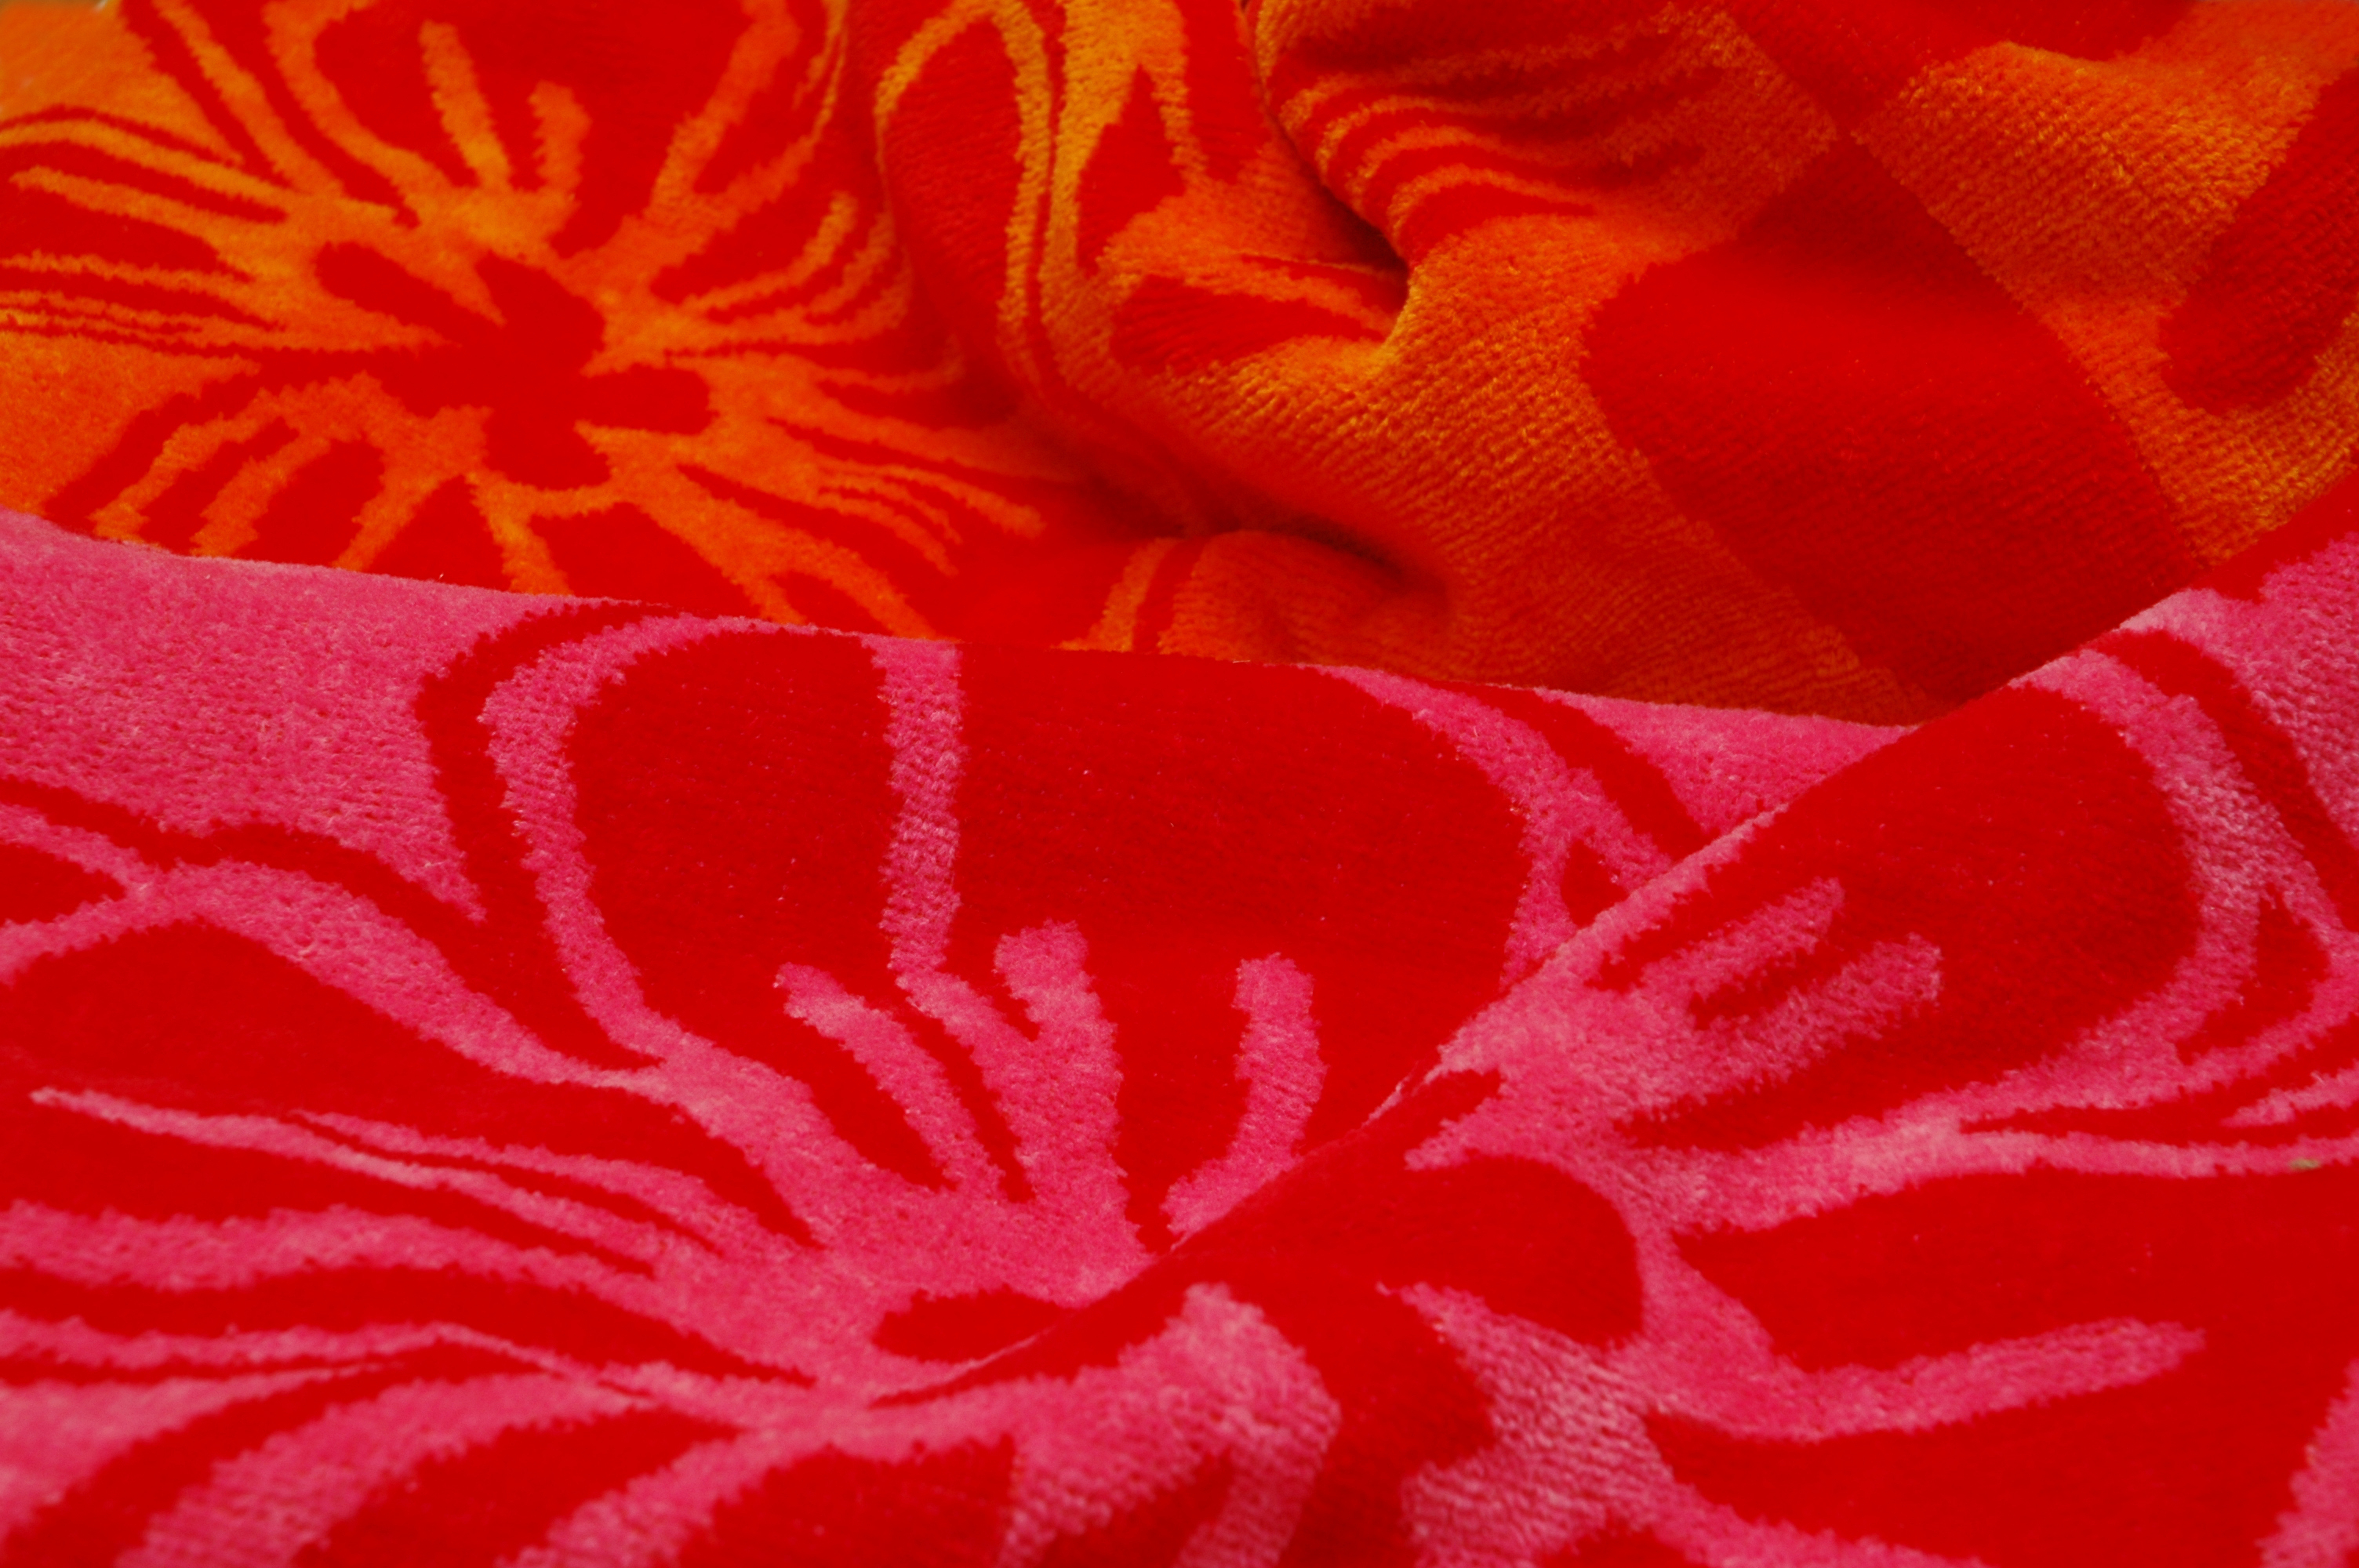 Towel with velour finish zoomed in.